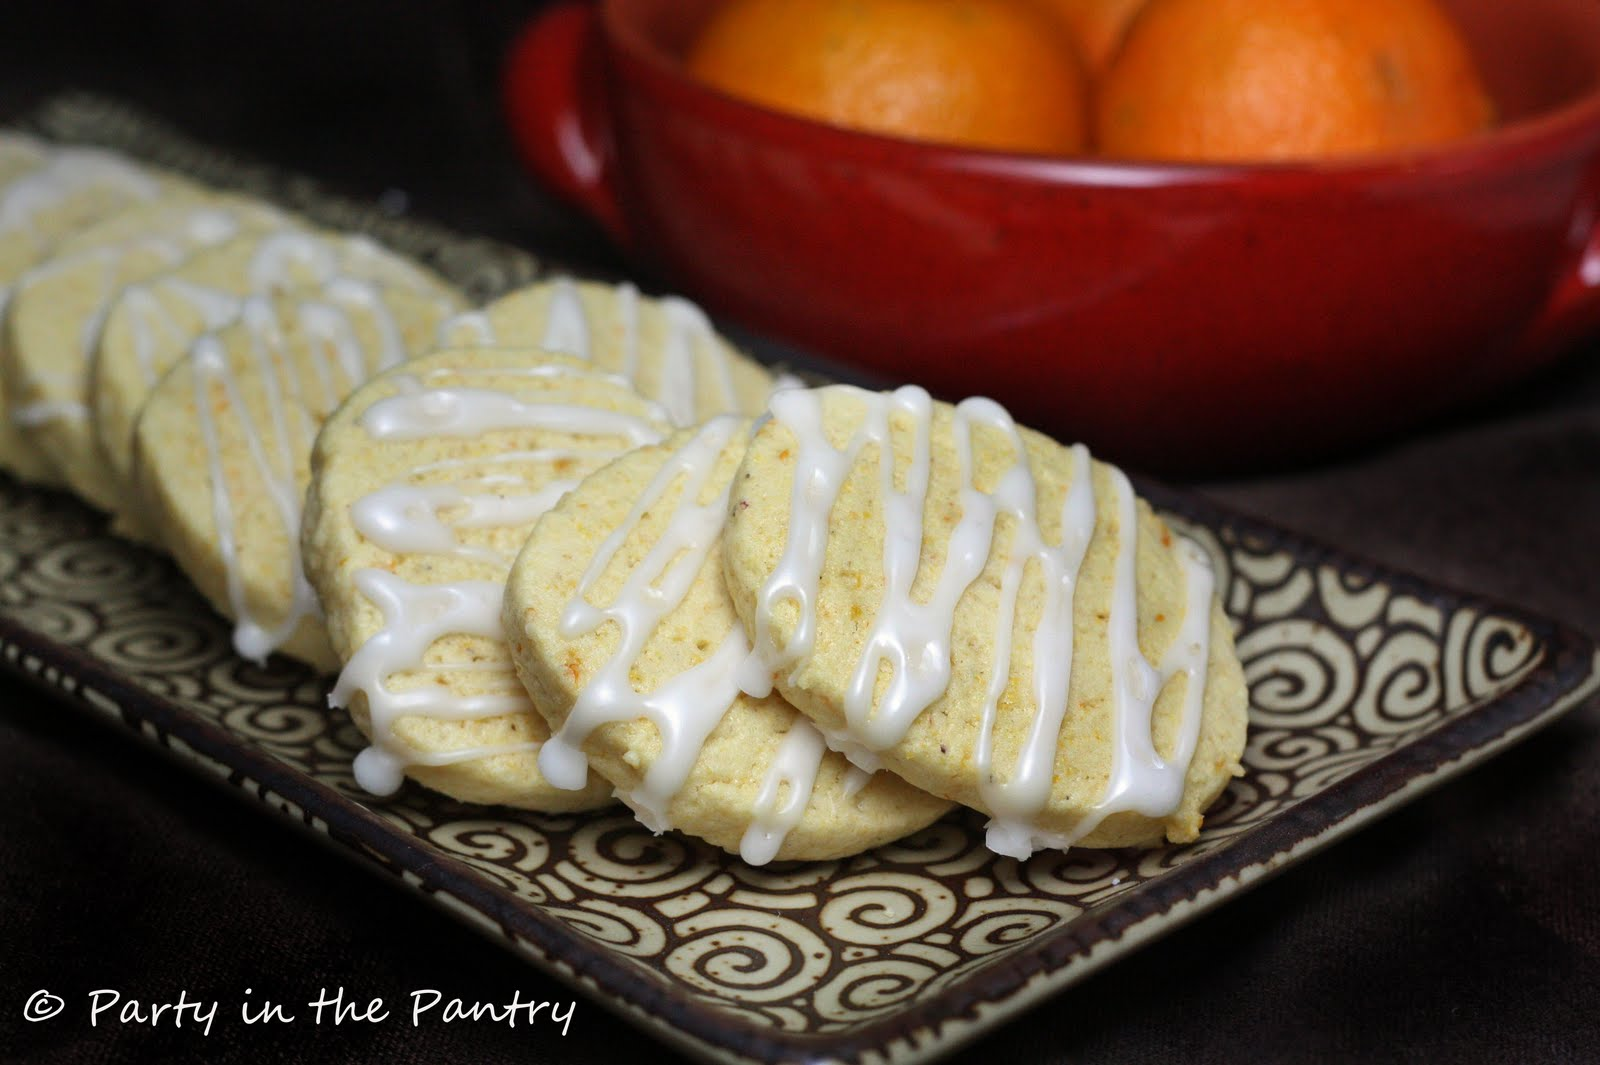 Party in the Pantry!: Orange Cornmeal Cookies